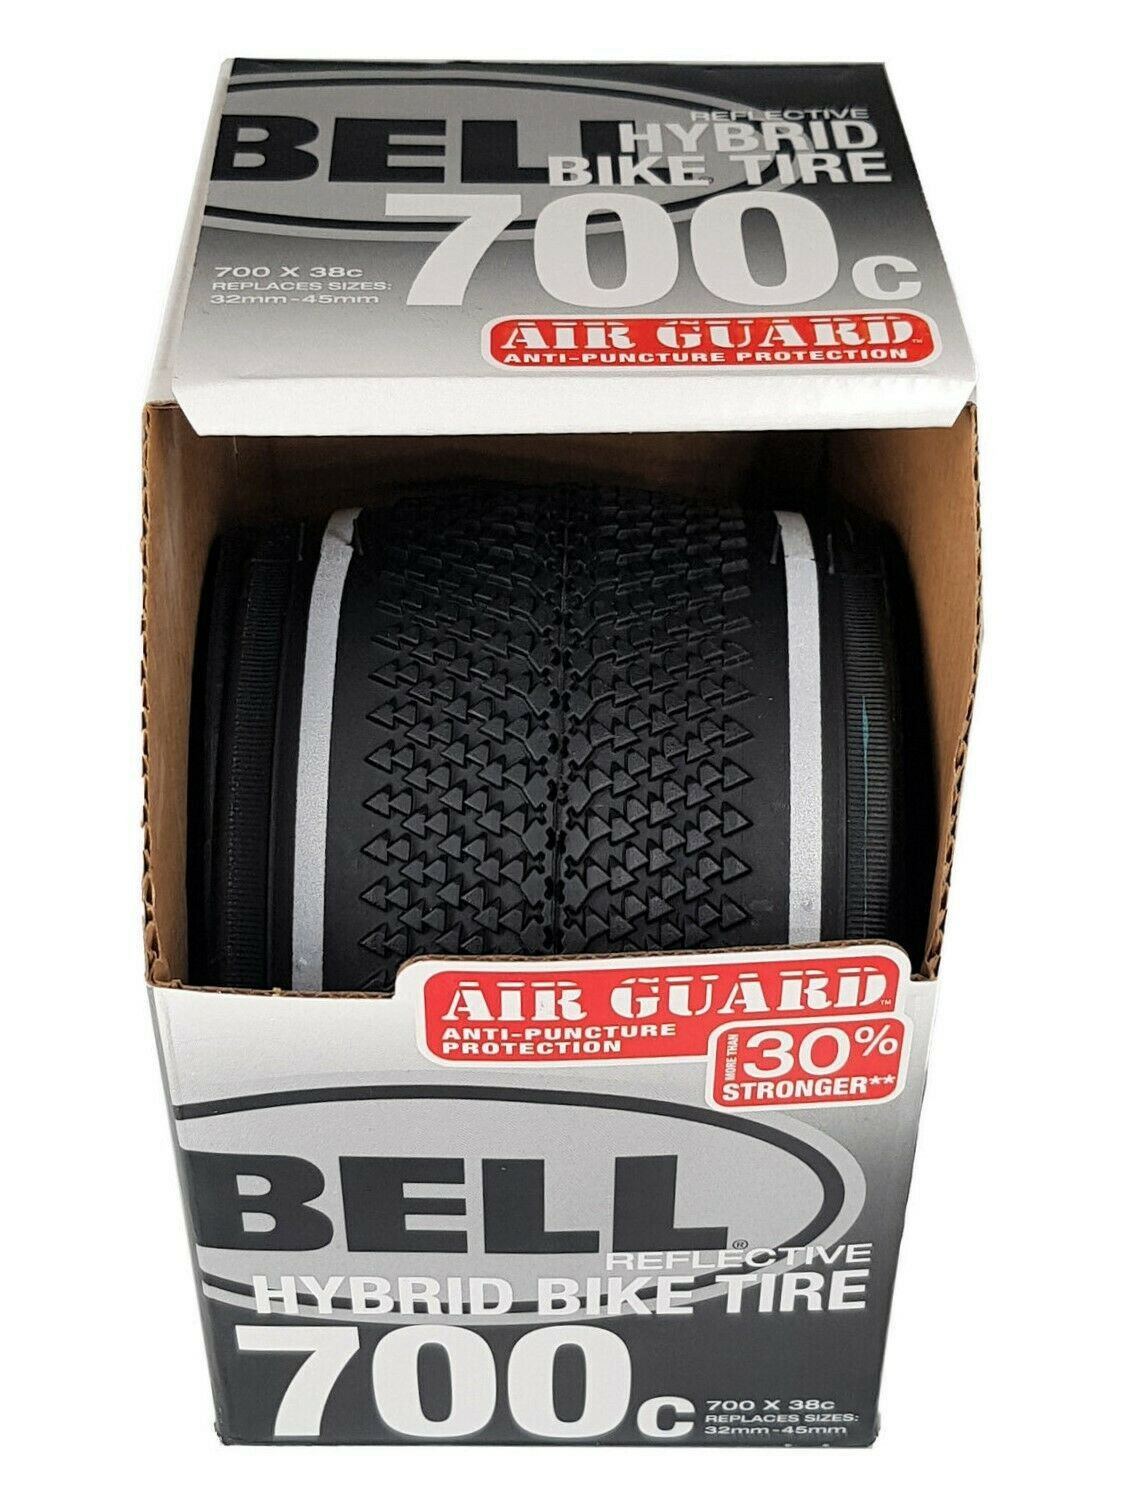 Bell Reflective Hybrid Bike Tire 700c x 38c Replaces:  32mm-45mm New - $24.70